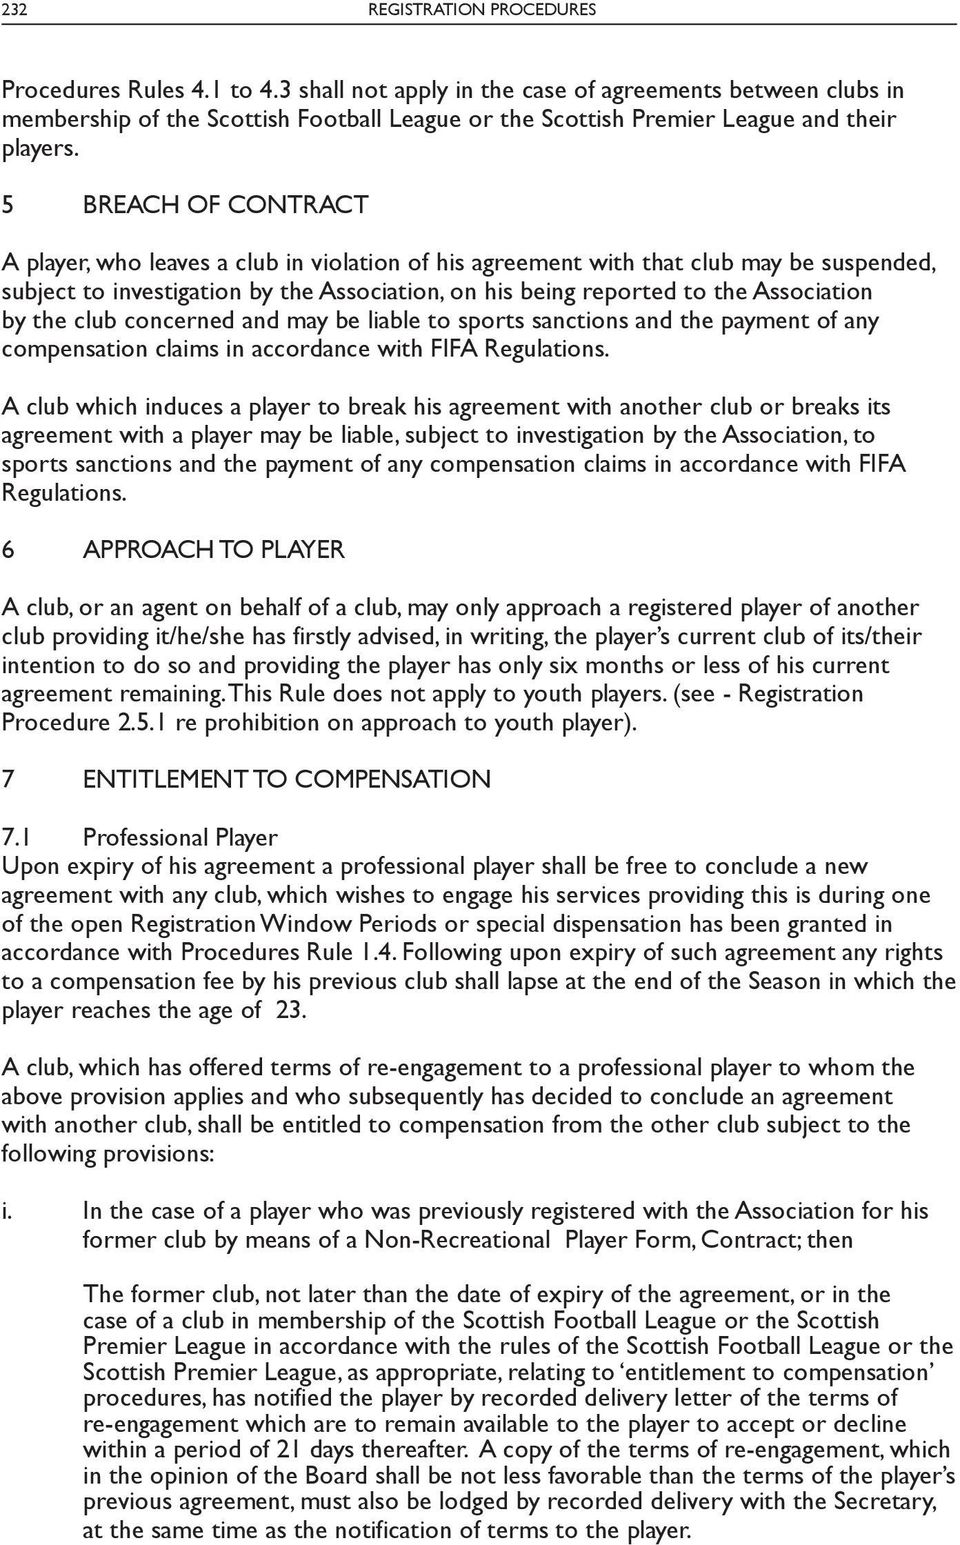 5 BREACH OF CONTRACT A player, who leaves a club in violation of his agreement with that club may be suspended, subject to investigation by the Association, on his being reported to the Association